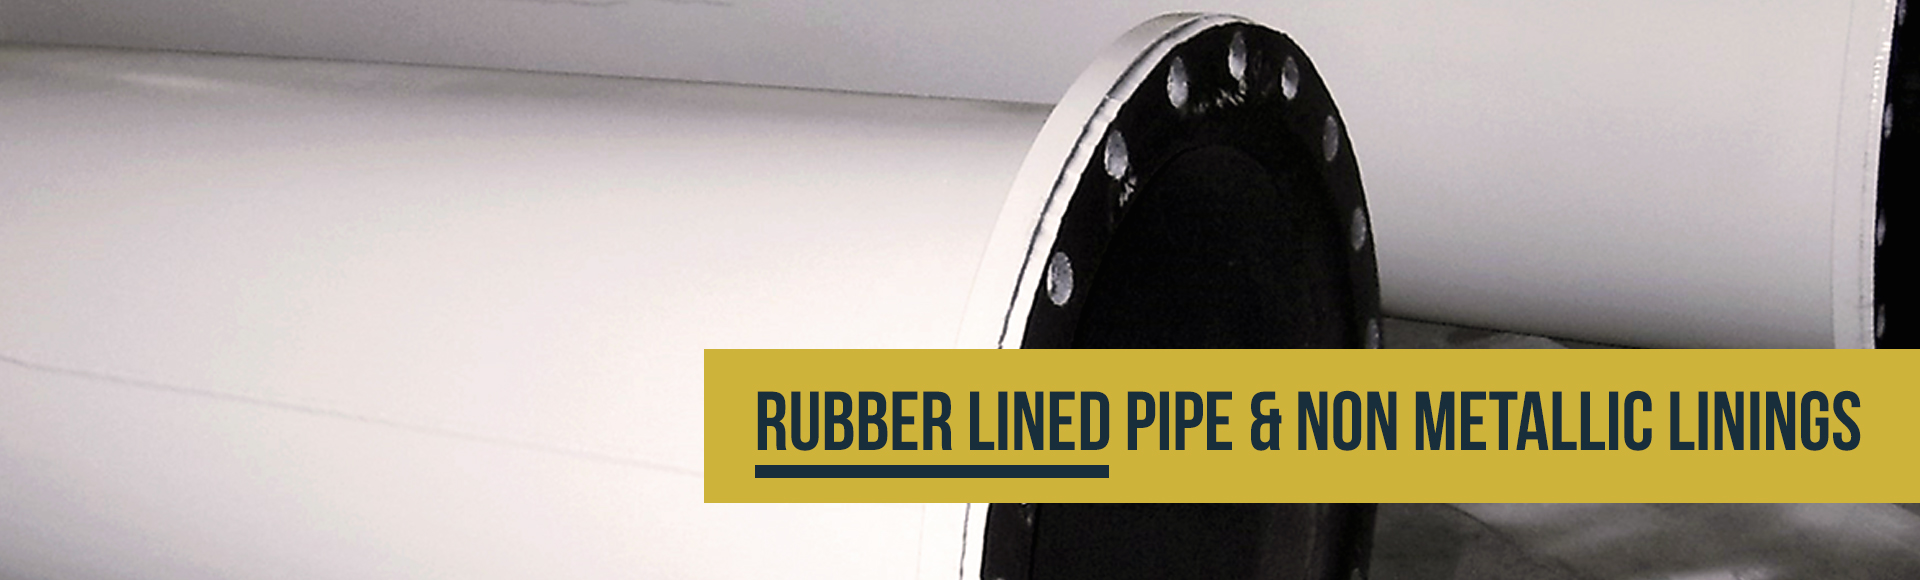 Rubber Lined Pipe & Non Metallic Linings - Trimay Wear Plate